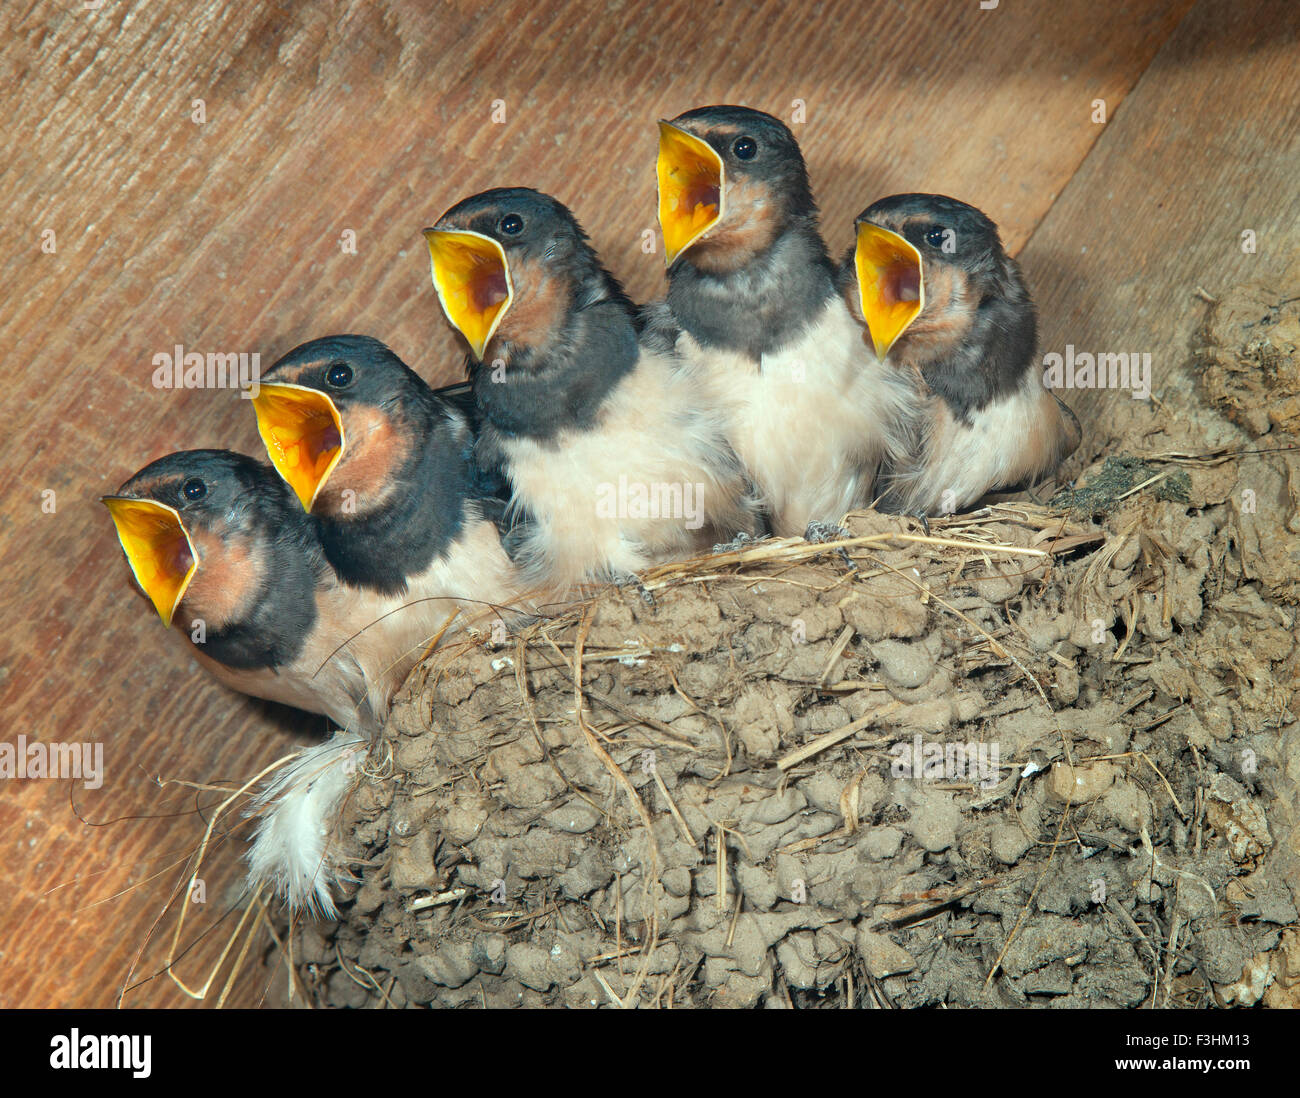 young Swallows Hirundo rustica  waiting for a feed in farm outbuilding - Stock Image